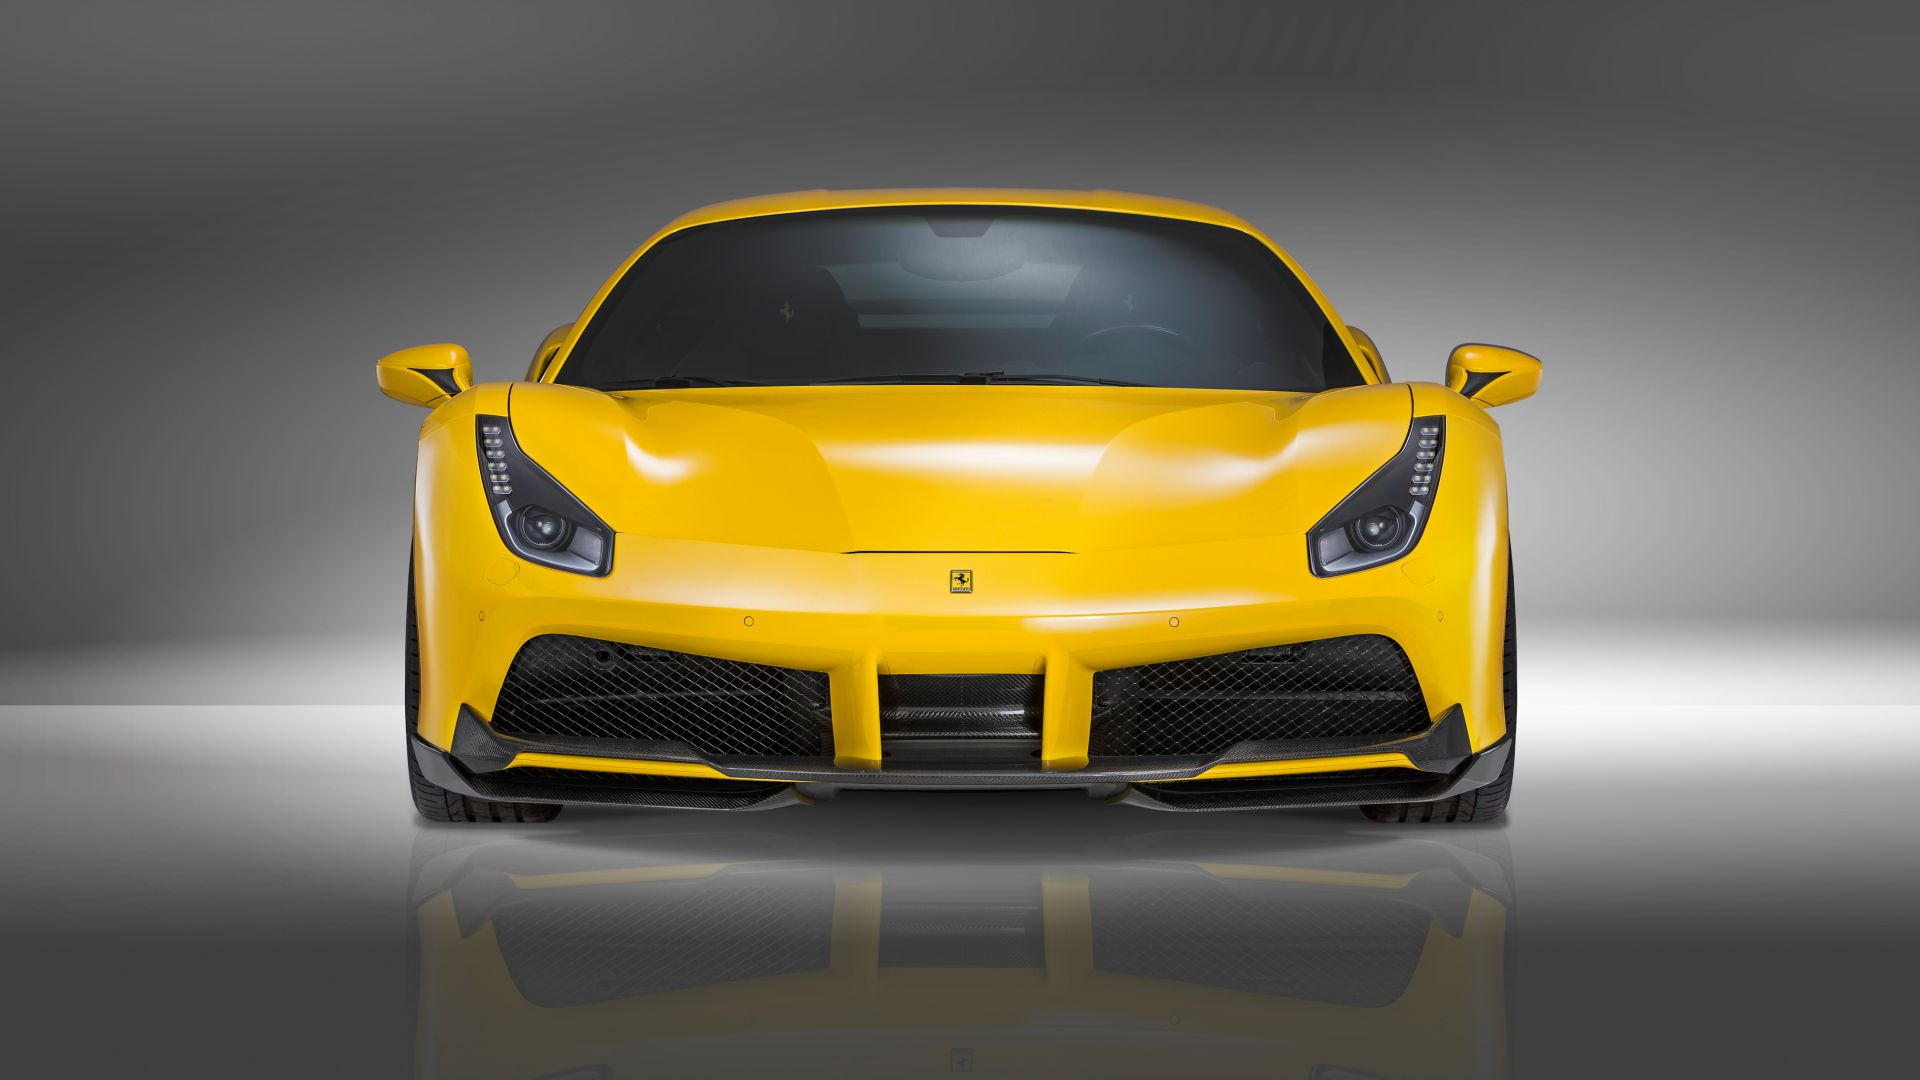 NOVITEC ROSSO Ferrari 488 gtb, supercar, yellow, speed (horizontal)